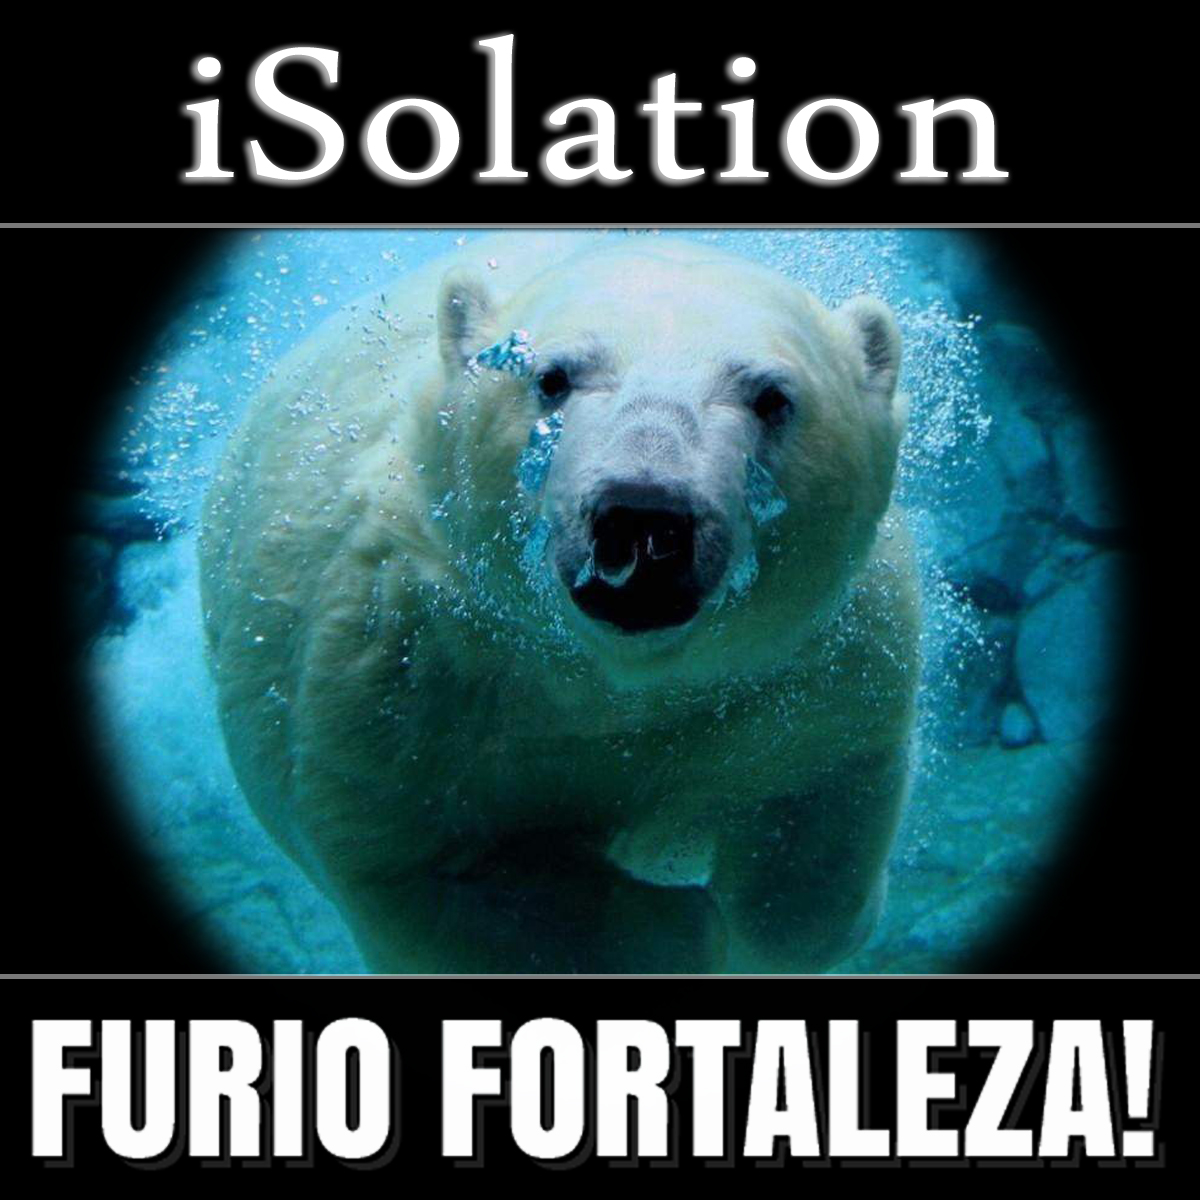 Furio Fortaleza! - 4.6 - iSolation